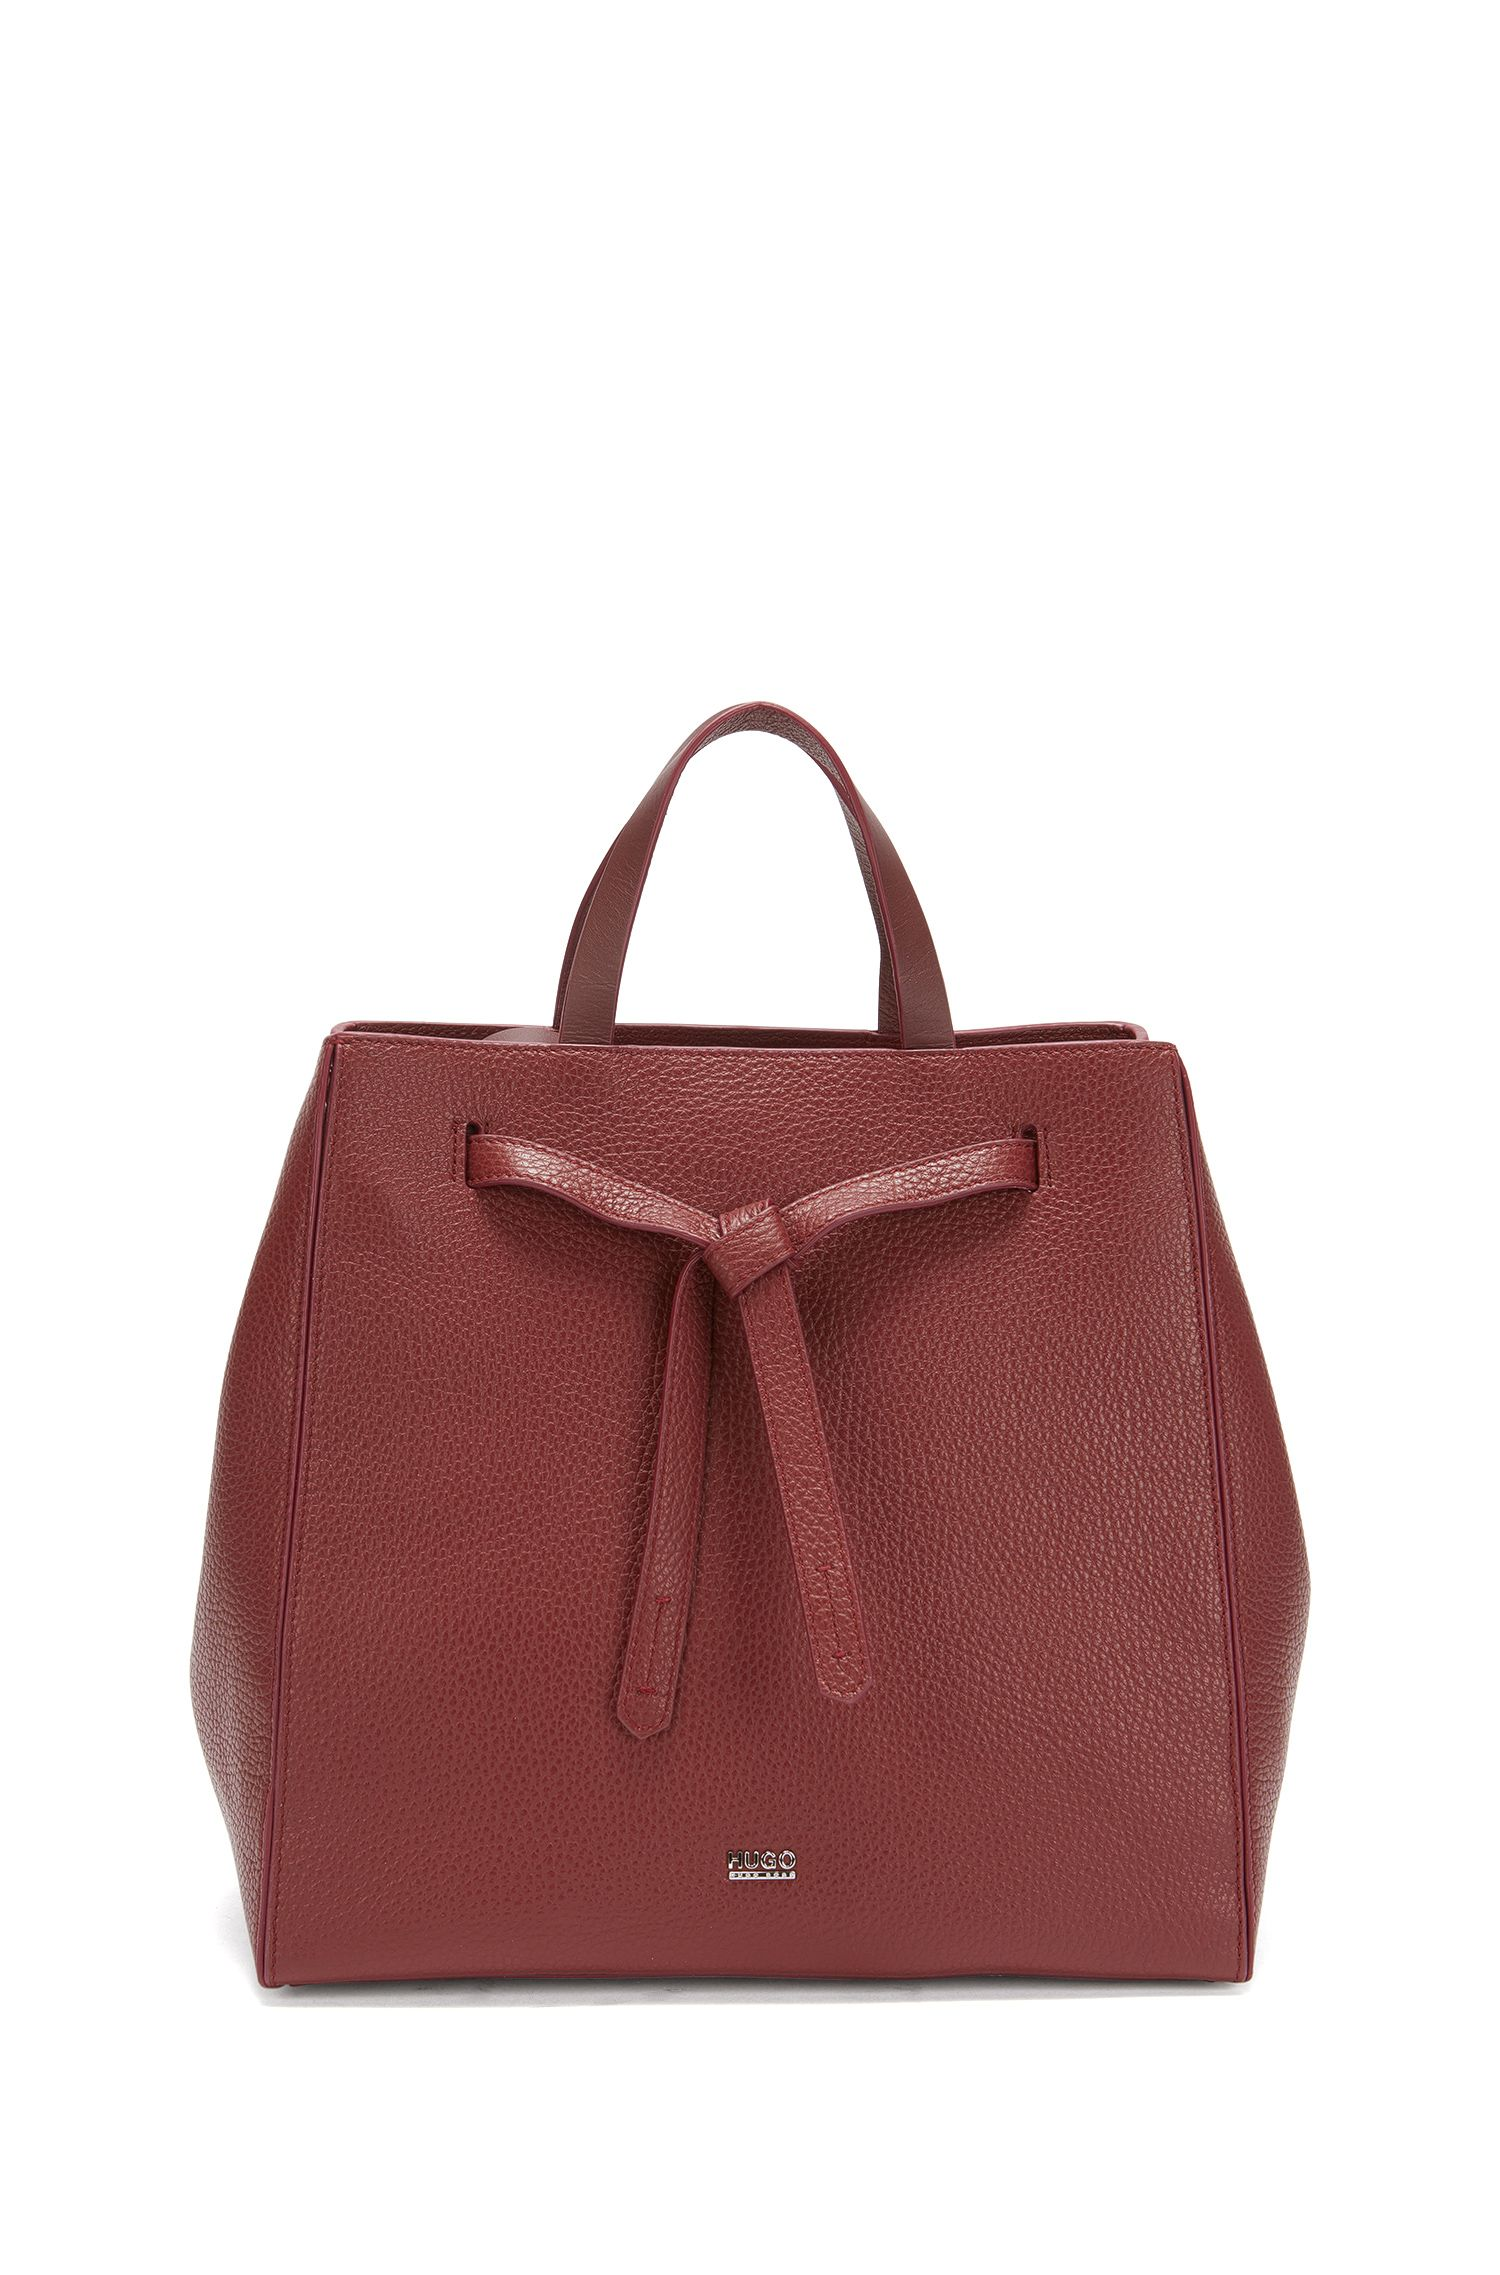 Leather tote bag with modern drawstring closure